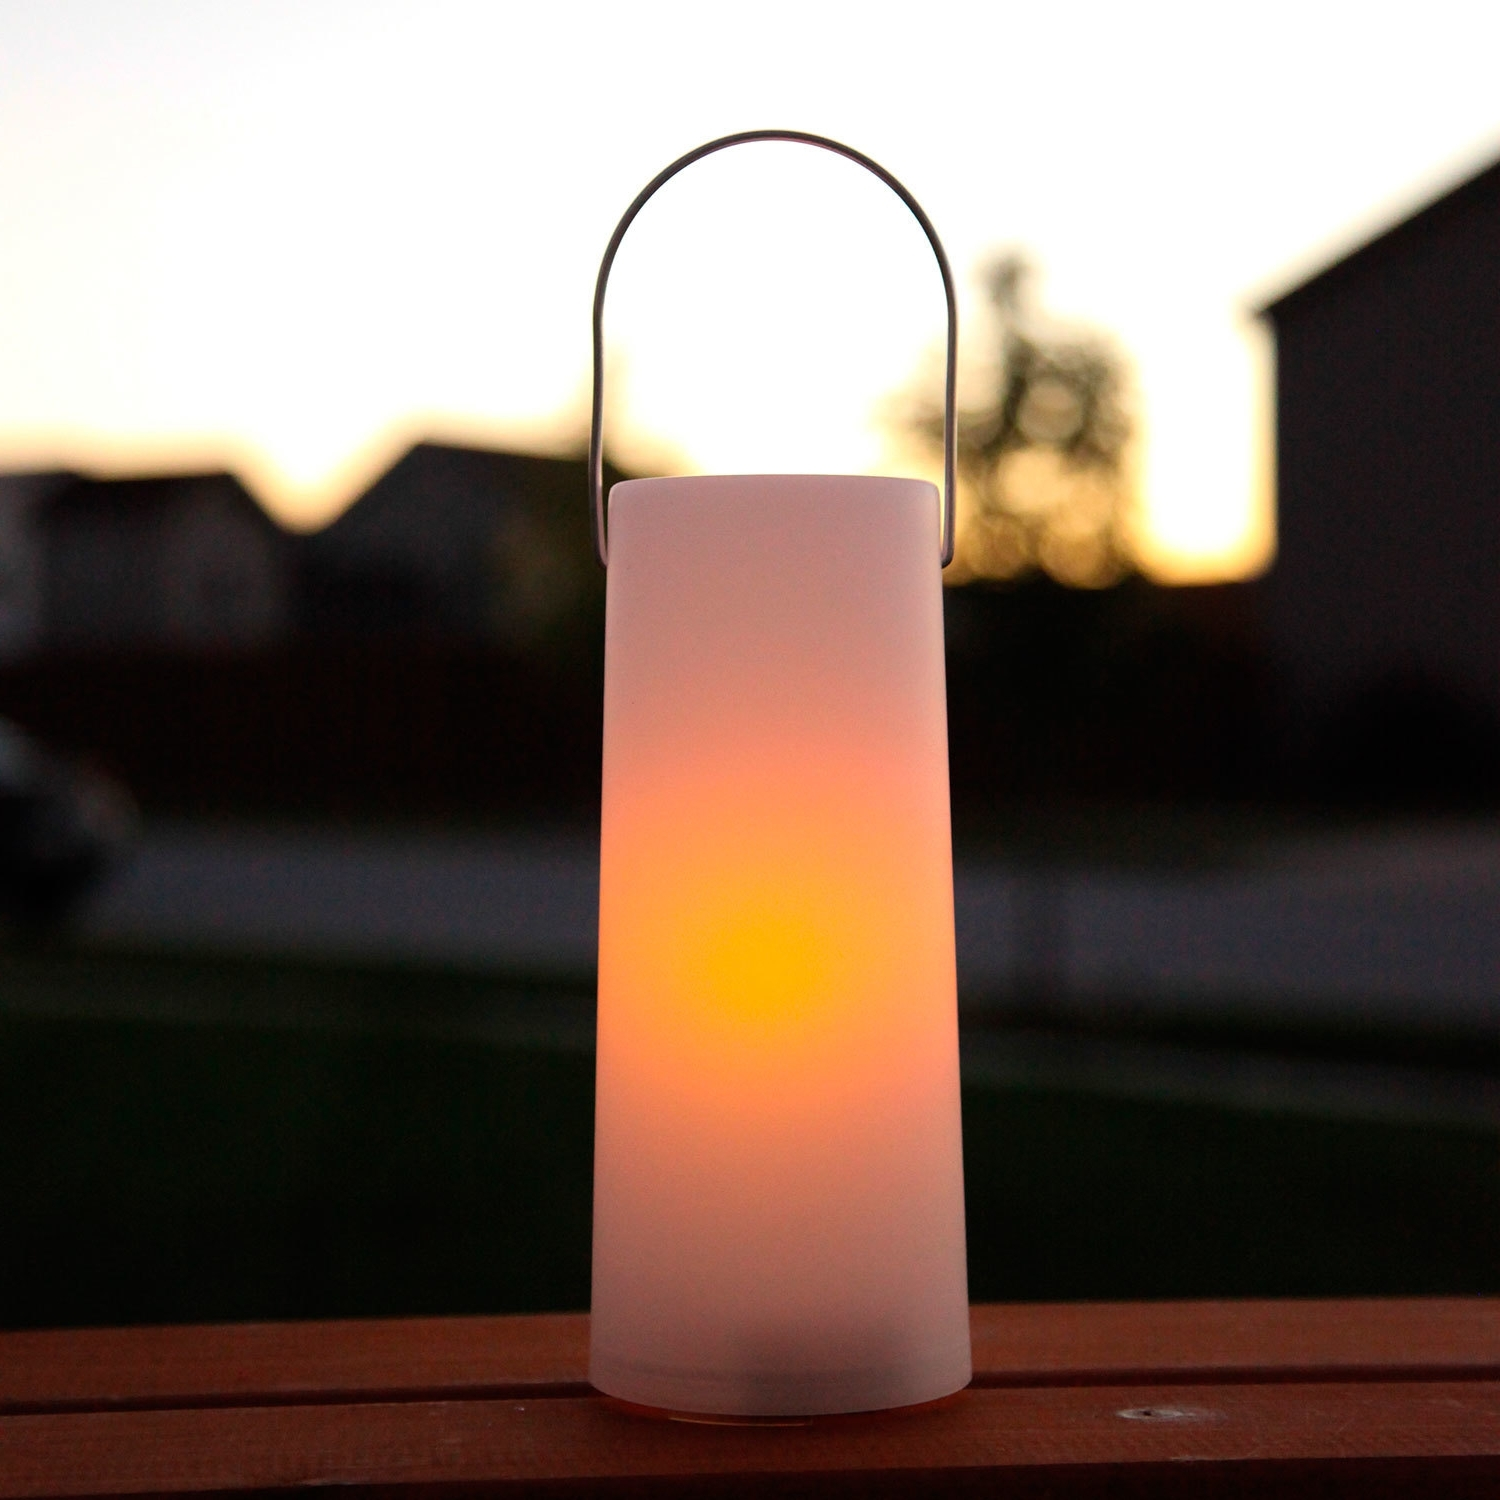 Outdoor Candle Lantern Lights Led Battery Operated Lanterns With Intended For Well Known Outdoor Lanterns With Battery Candles (Gallery 2 of 20)